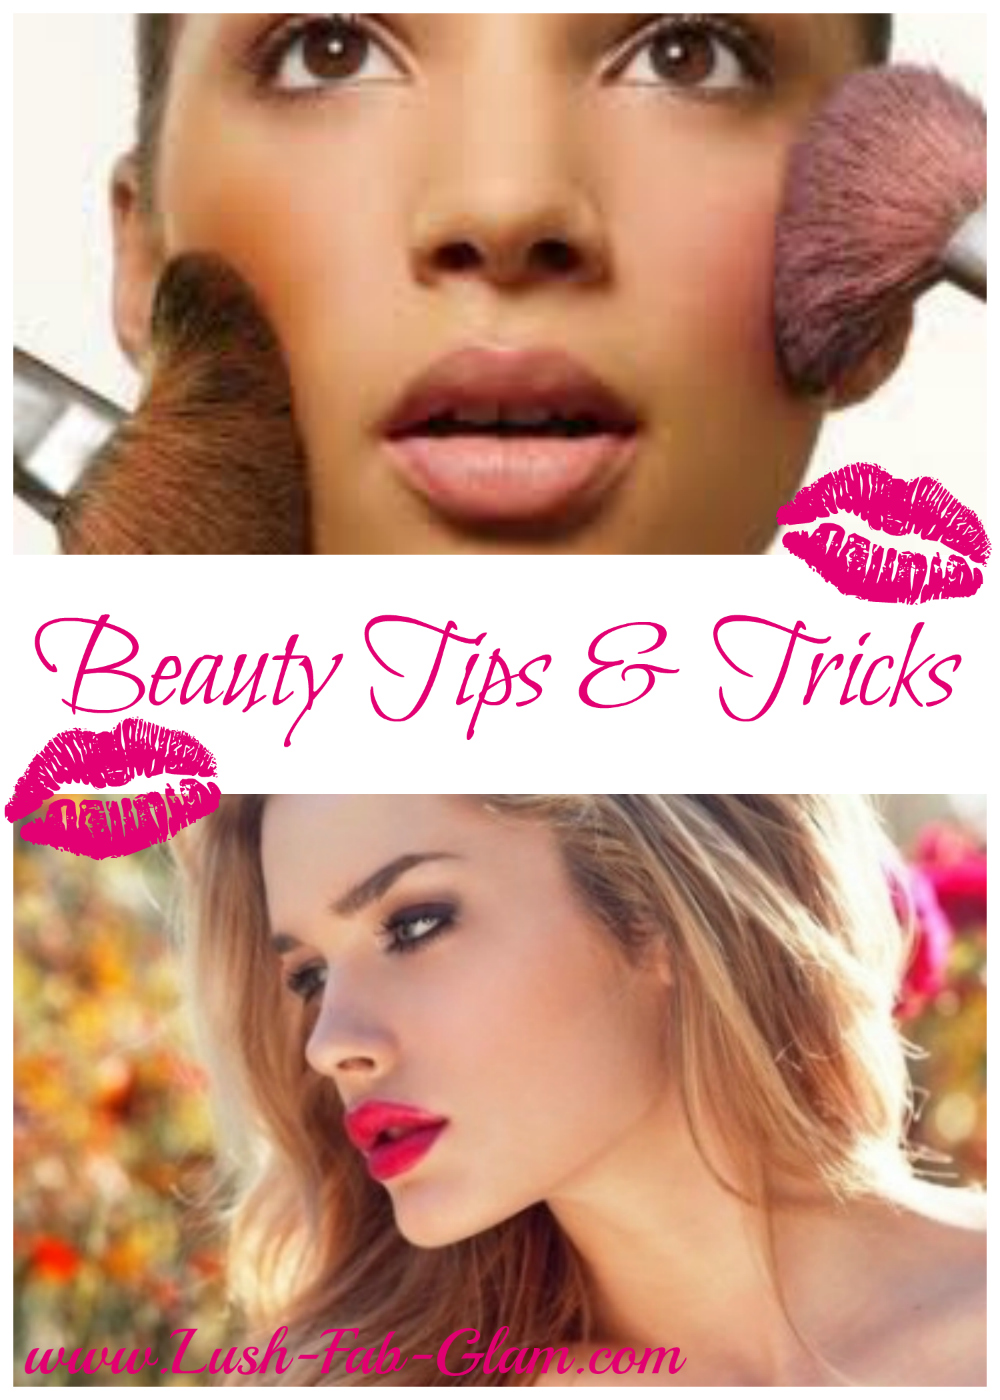 Lush Fab Glam Blogazine: 10 Beauty Tips For Fixing The ...